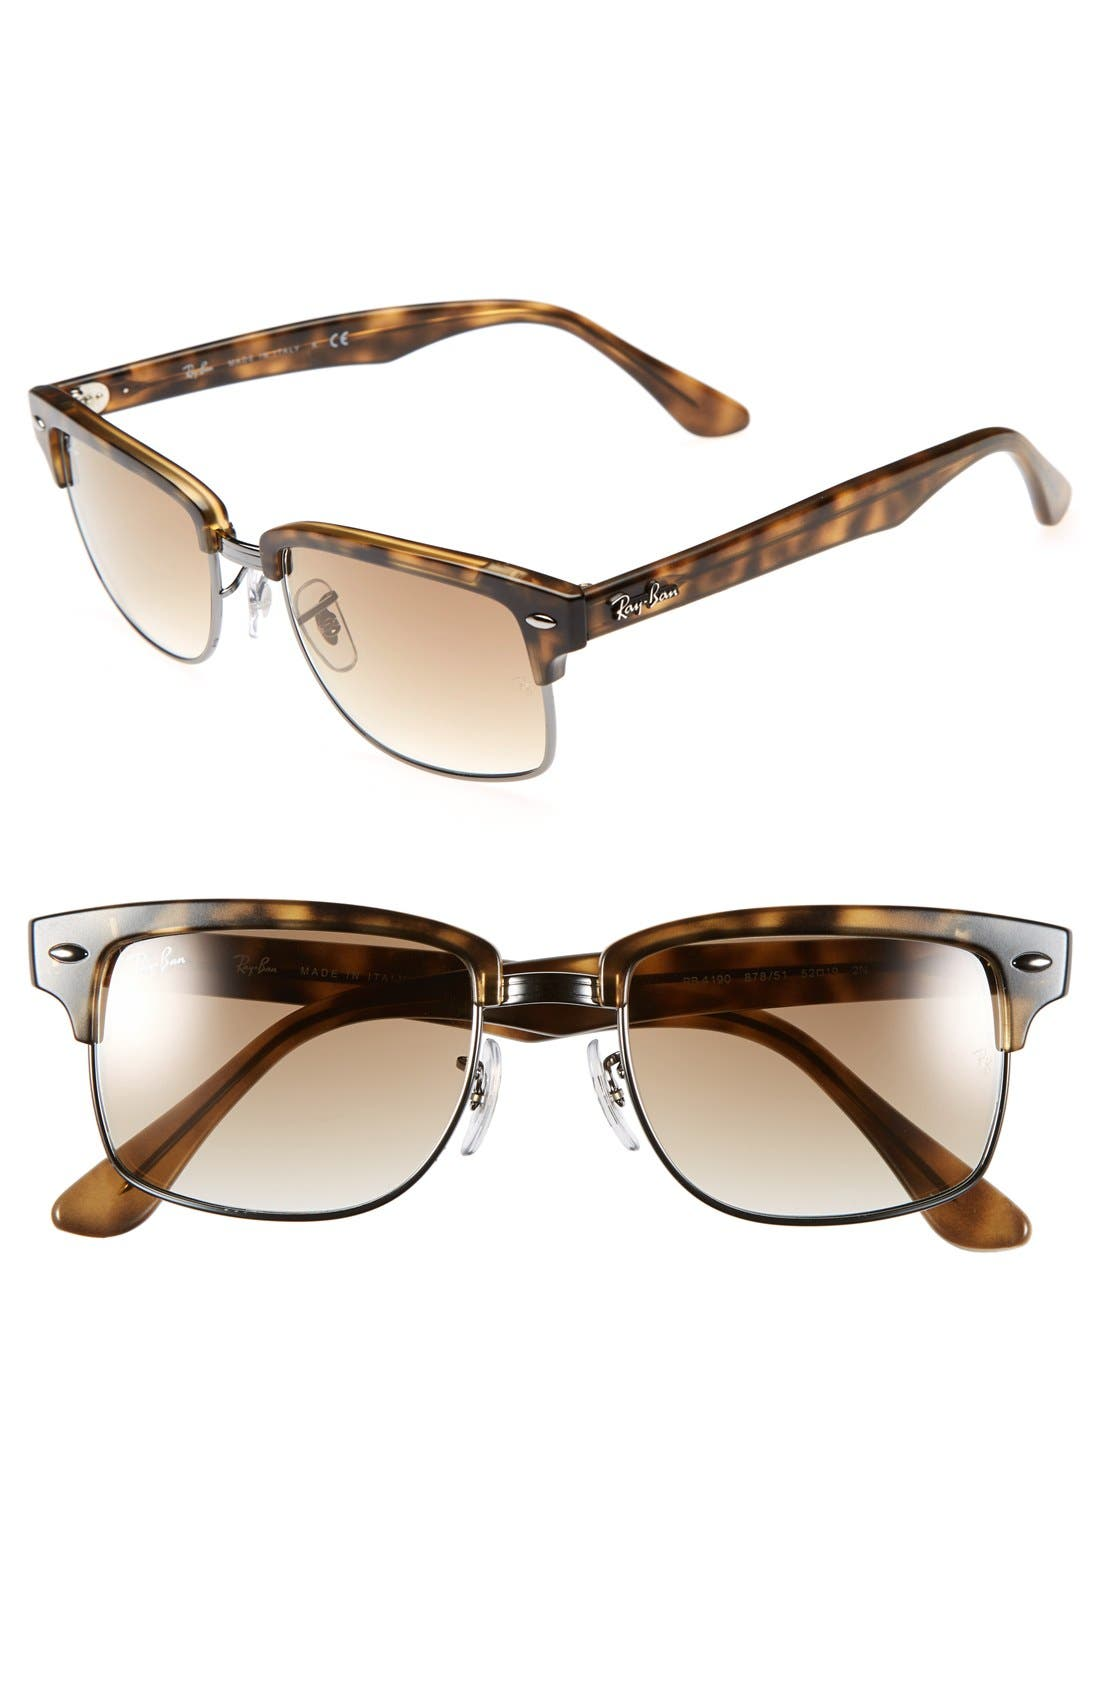 Main Image - Ray-Ban 'Clubmaster' Square 52mm Sunglasses